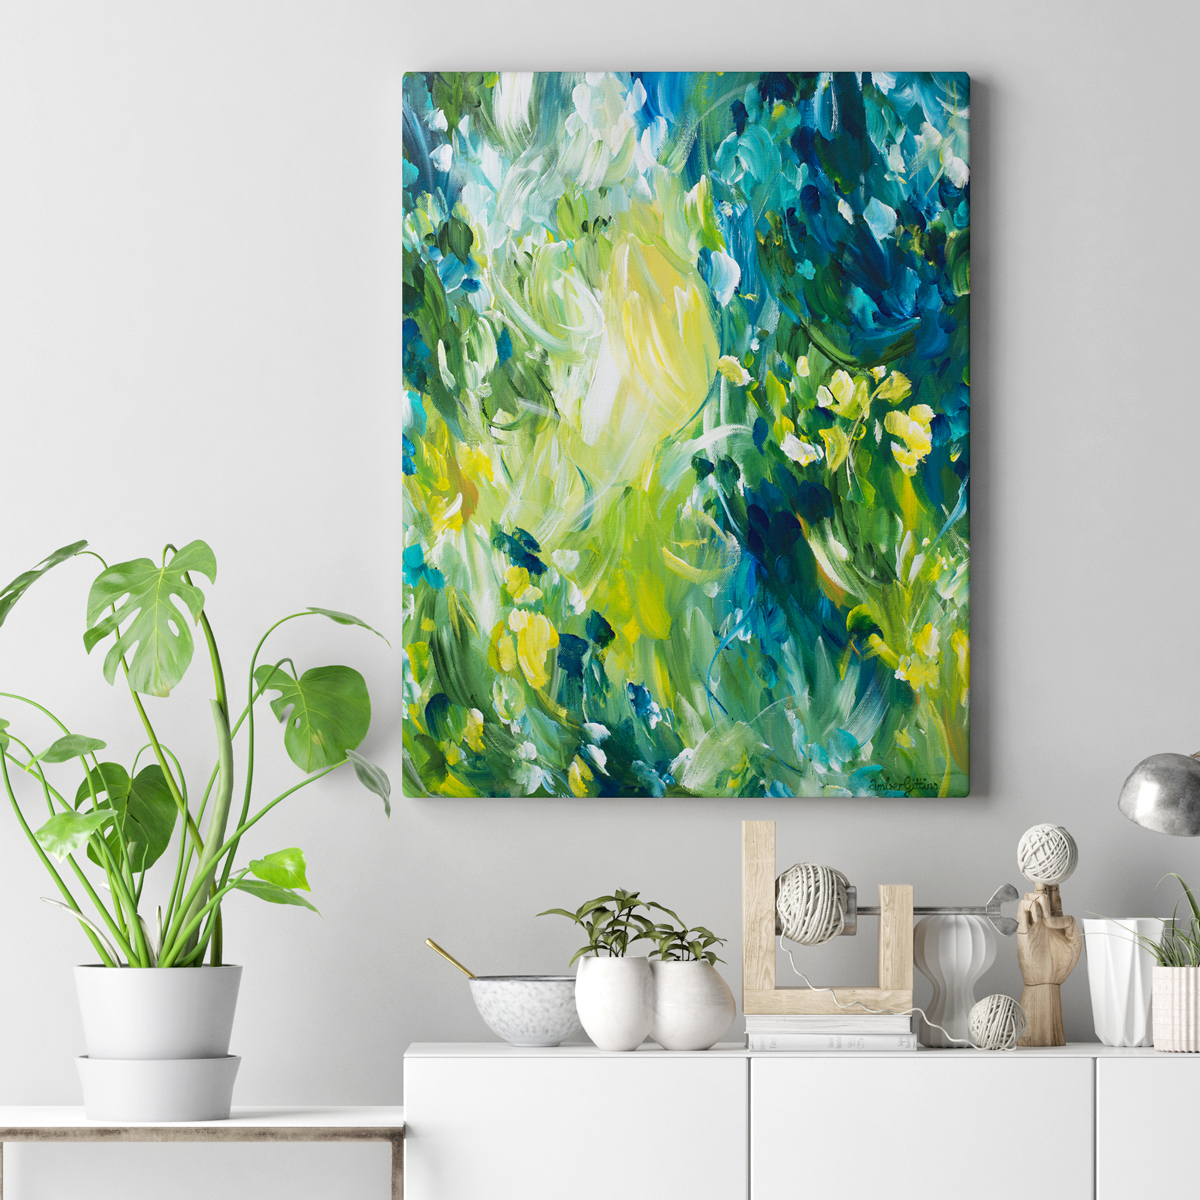 Springtime-Fantasy-on-wall-by-Amber-Gittins.-Abstract-artist